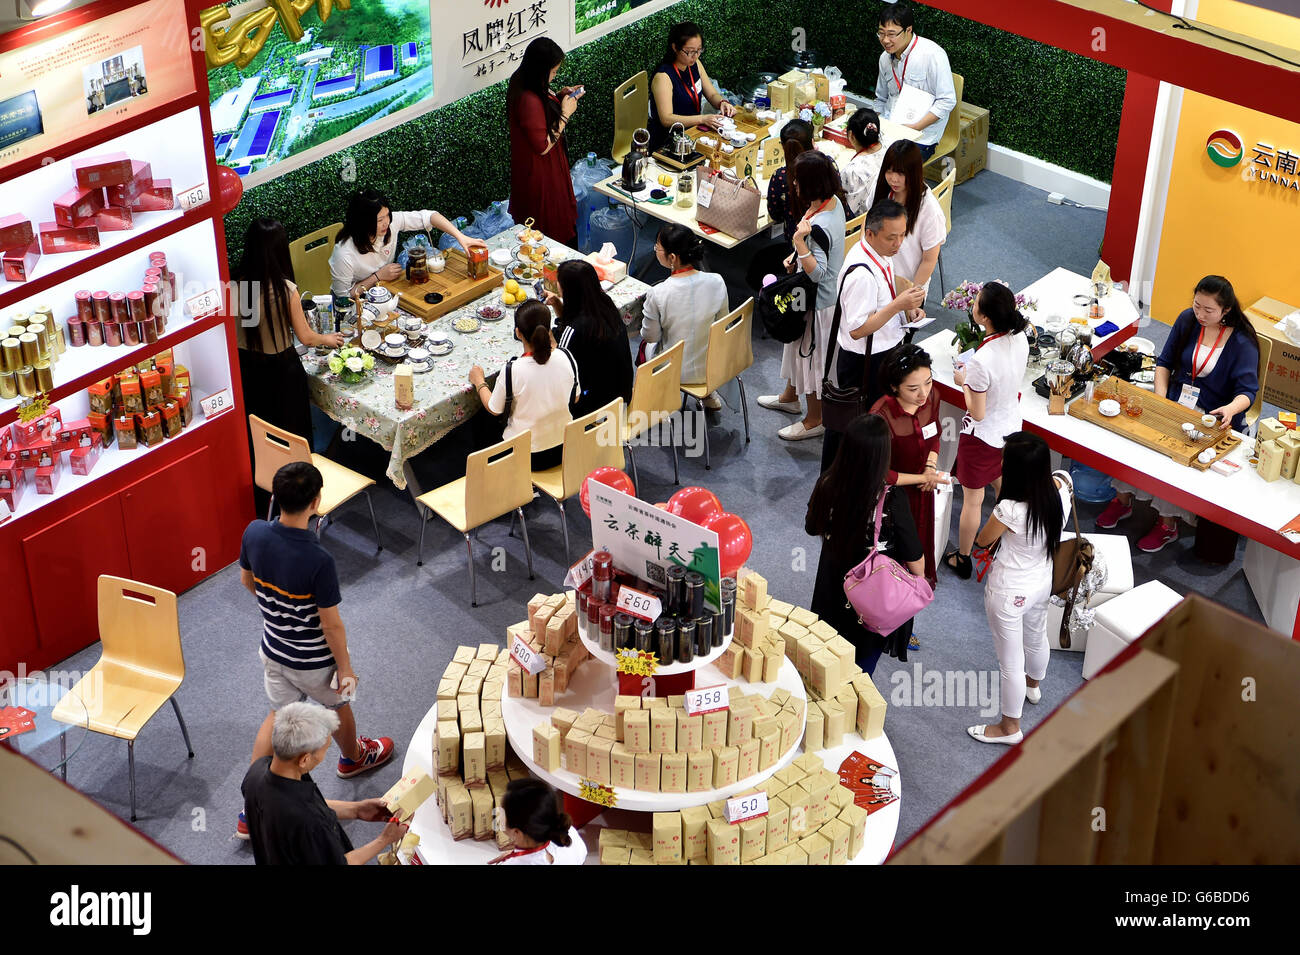 Beijing, China. 24th June, 2016. Visitors tast tea during the Beijing International Tea Expo in Beijing, capital - Stock Image